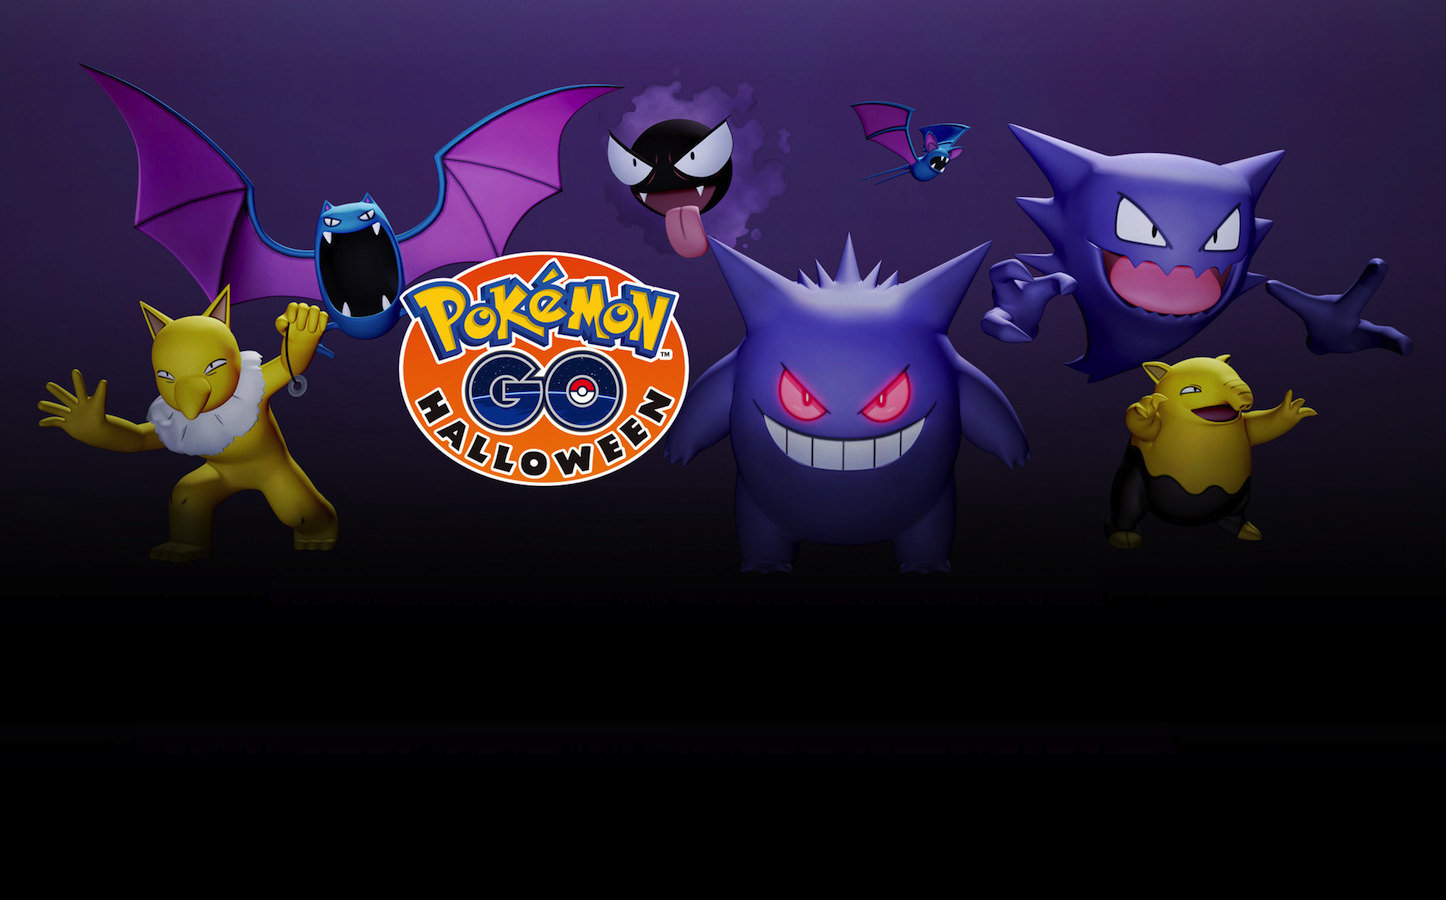 Pokemon go halloween campaign